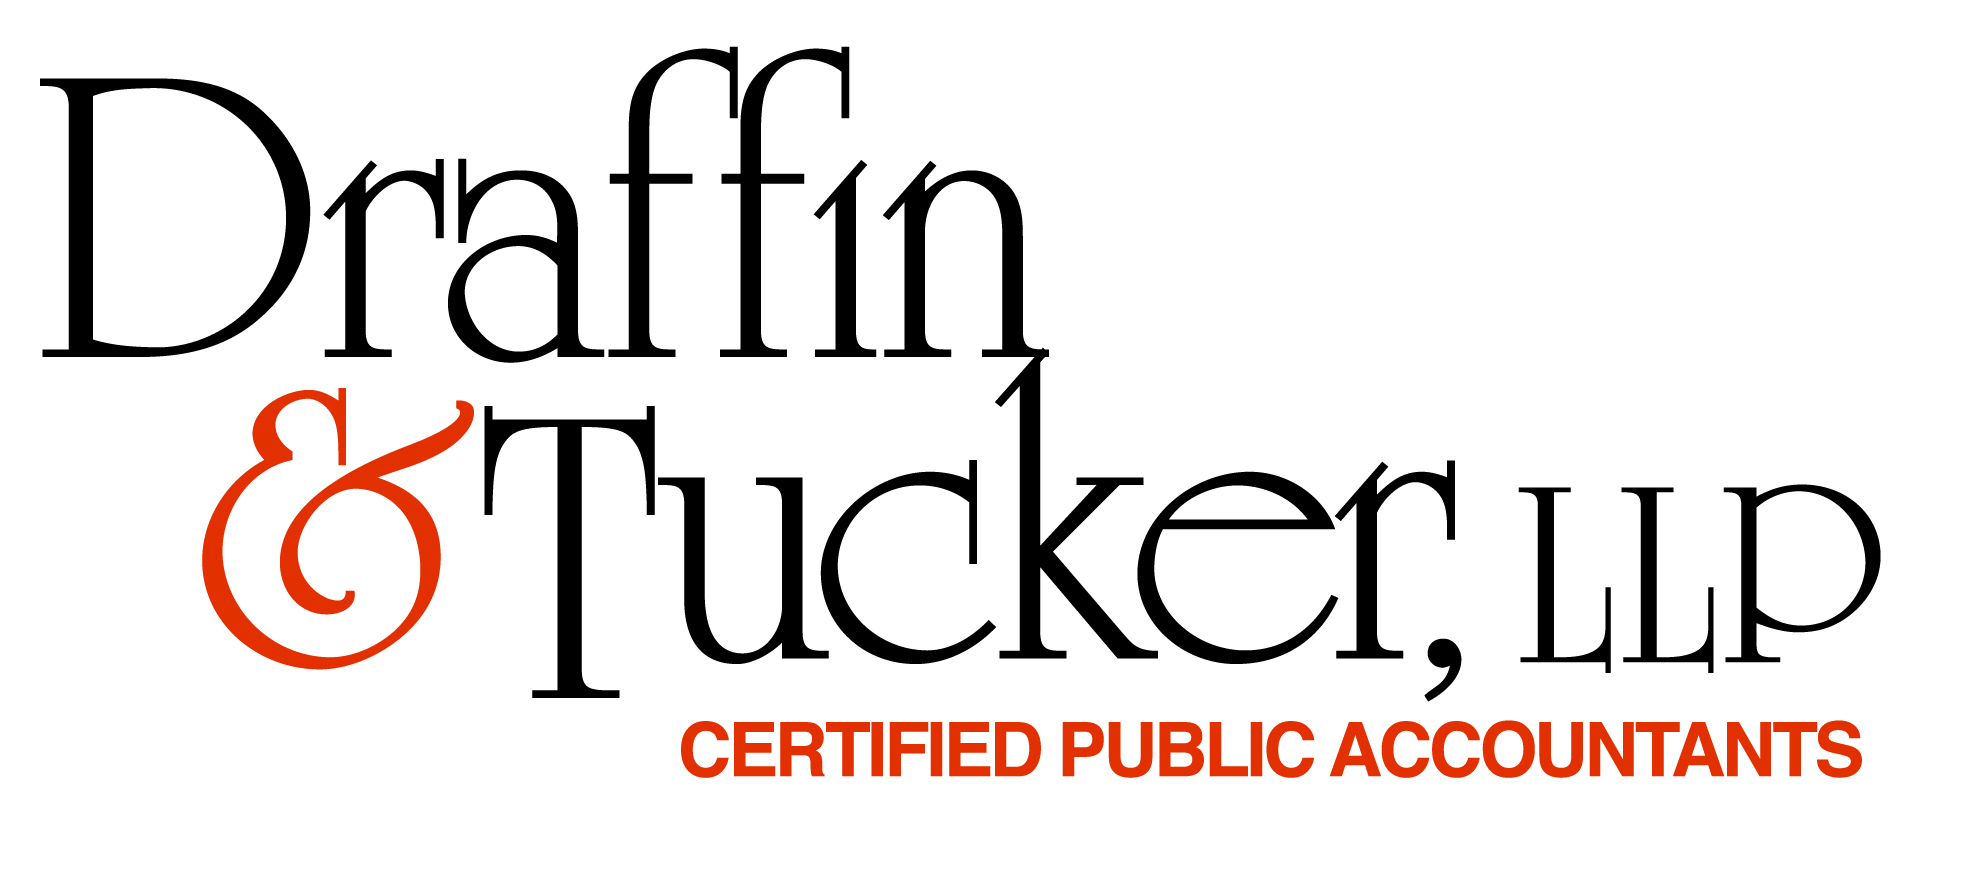 Business professional services albany area chamber of commerce draffin tucker llp malvernweather Gallery